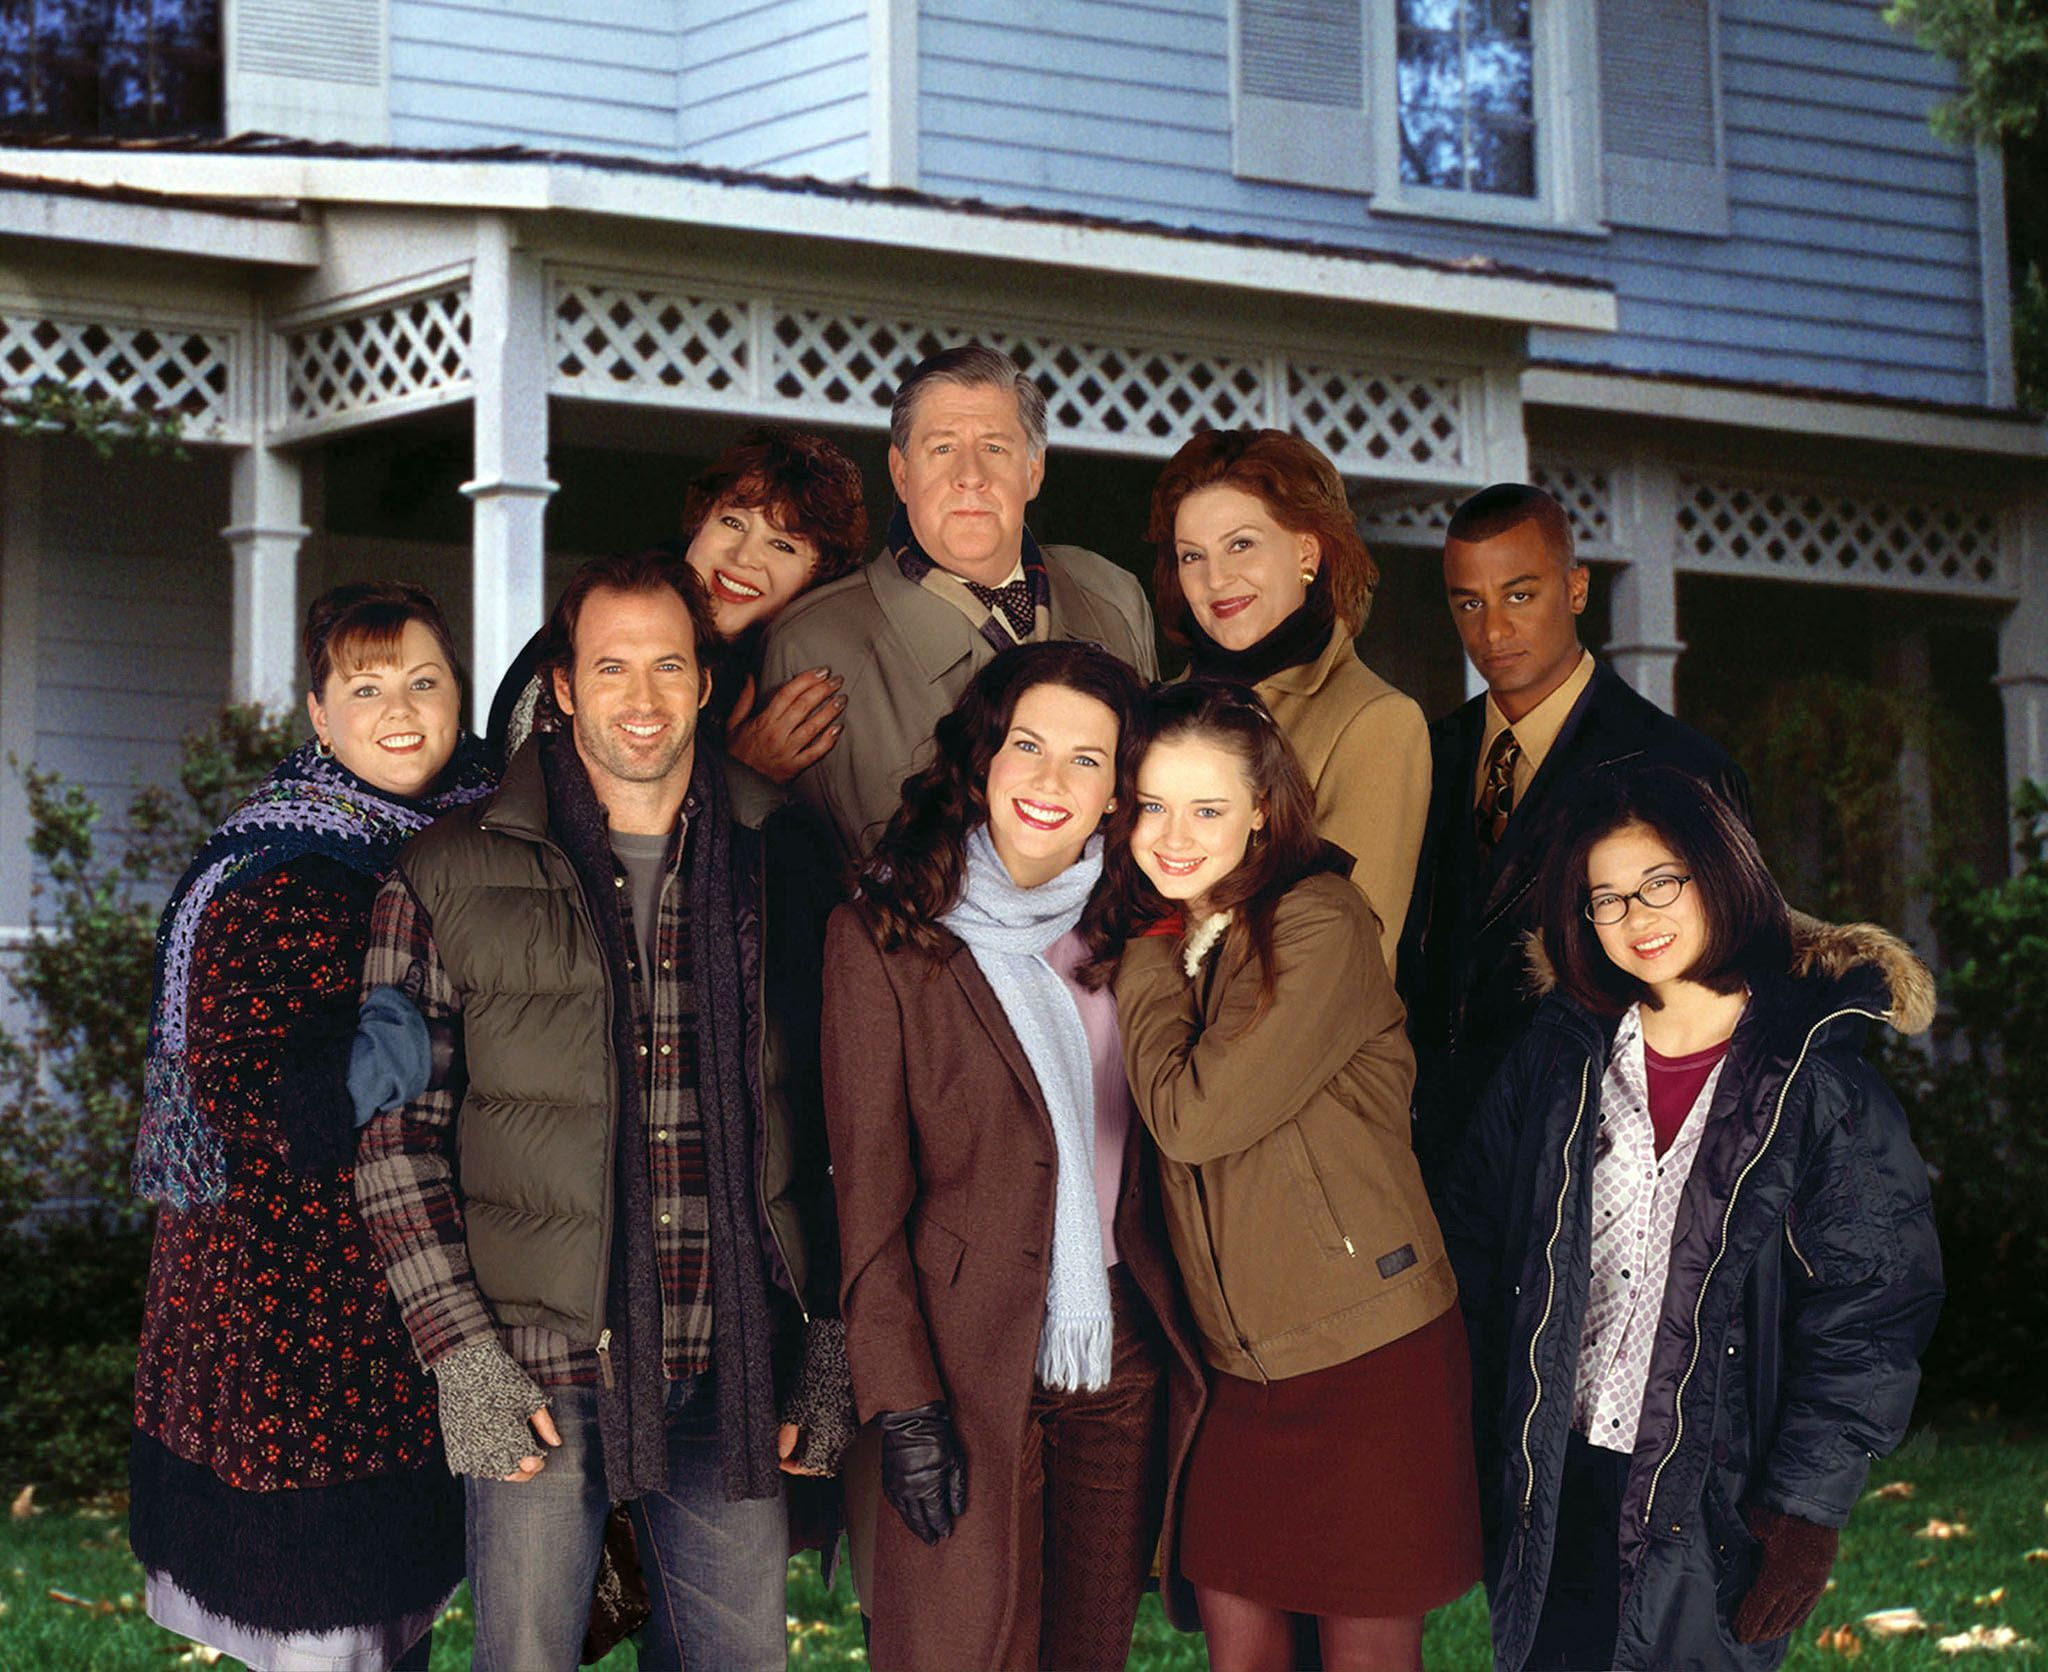 Photo of 10 'Gilmore Girls' Episodes That Will Make You Want to Binge-Watch All 7 Seasons on Netflix